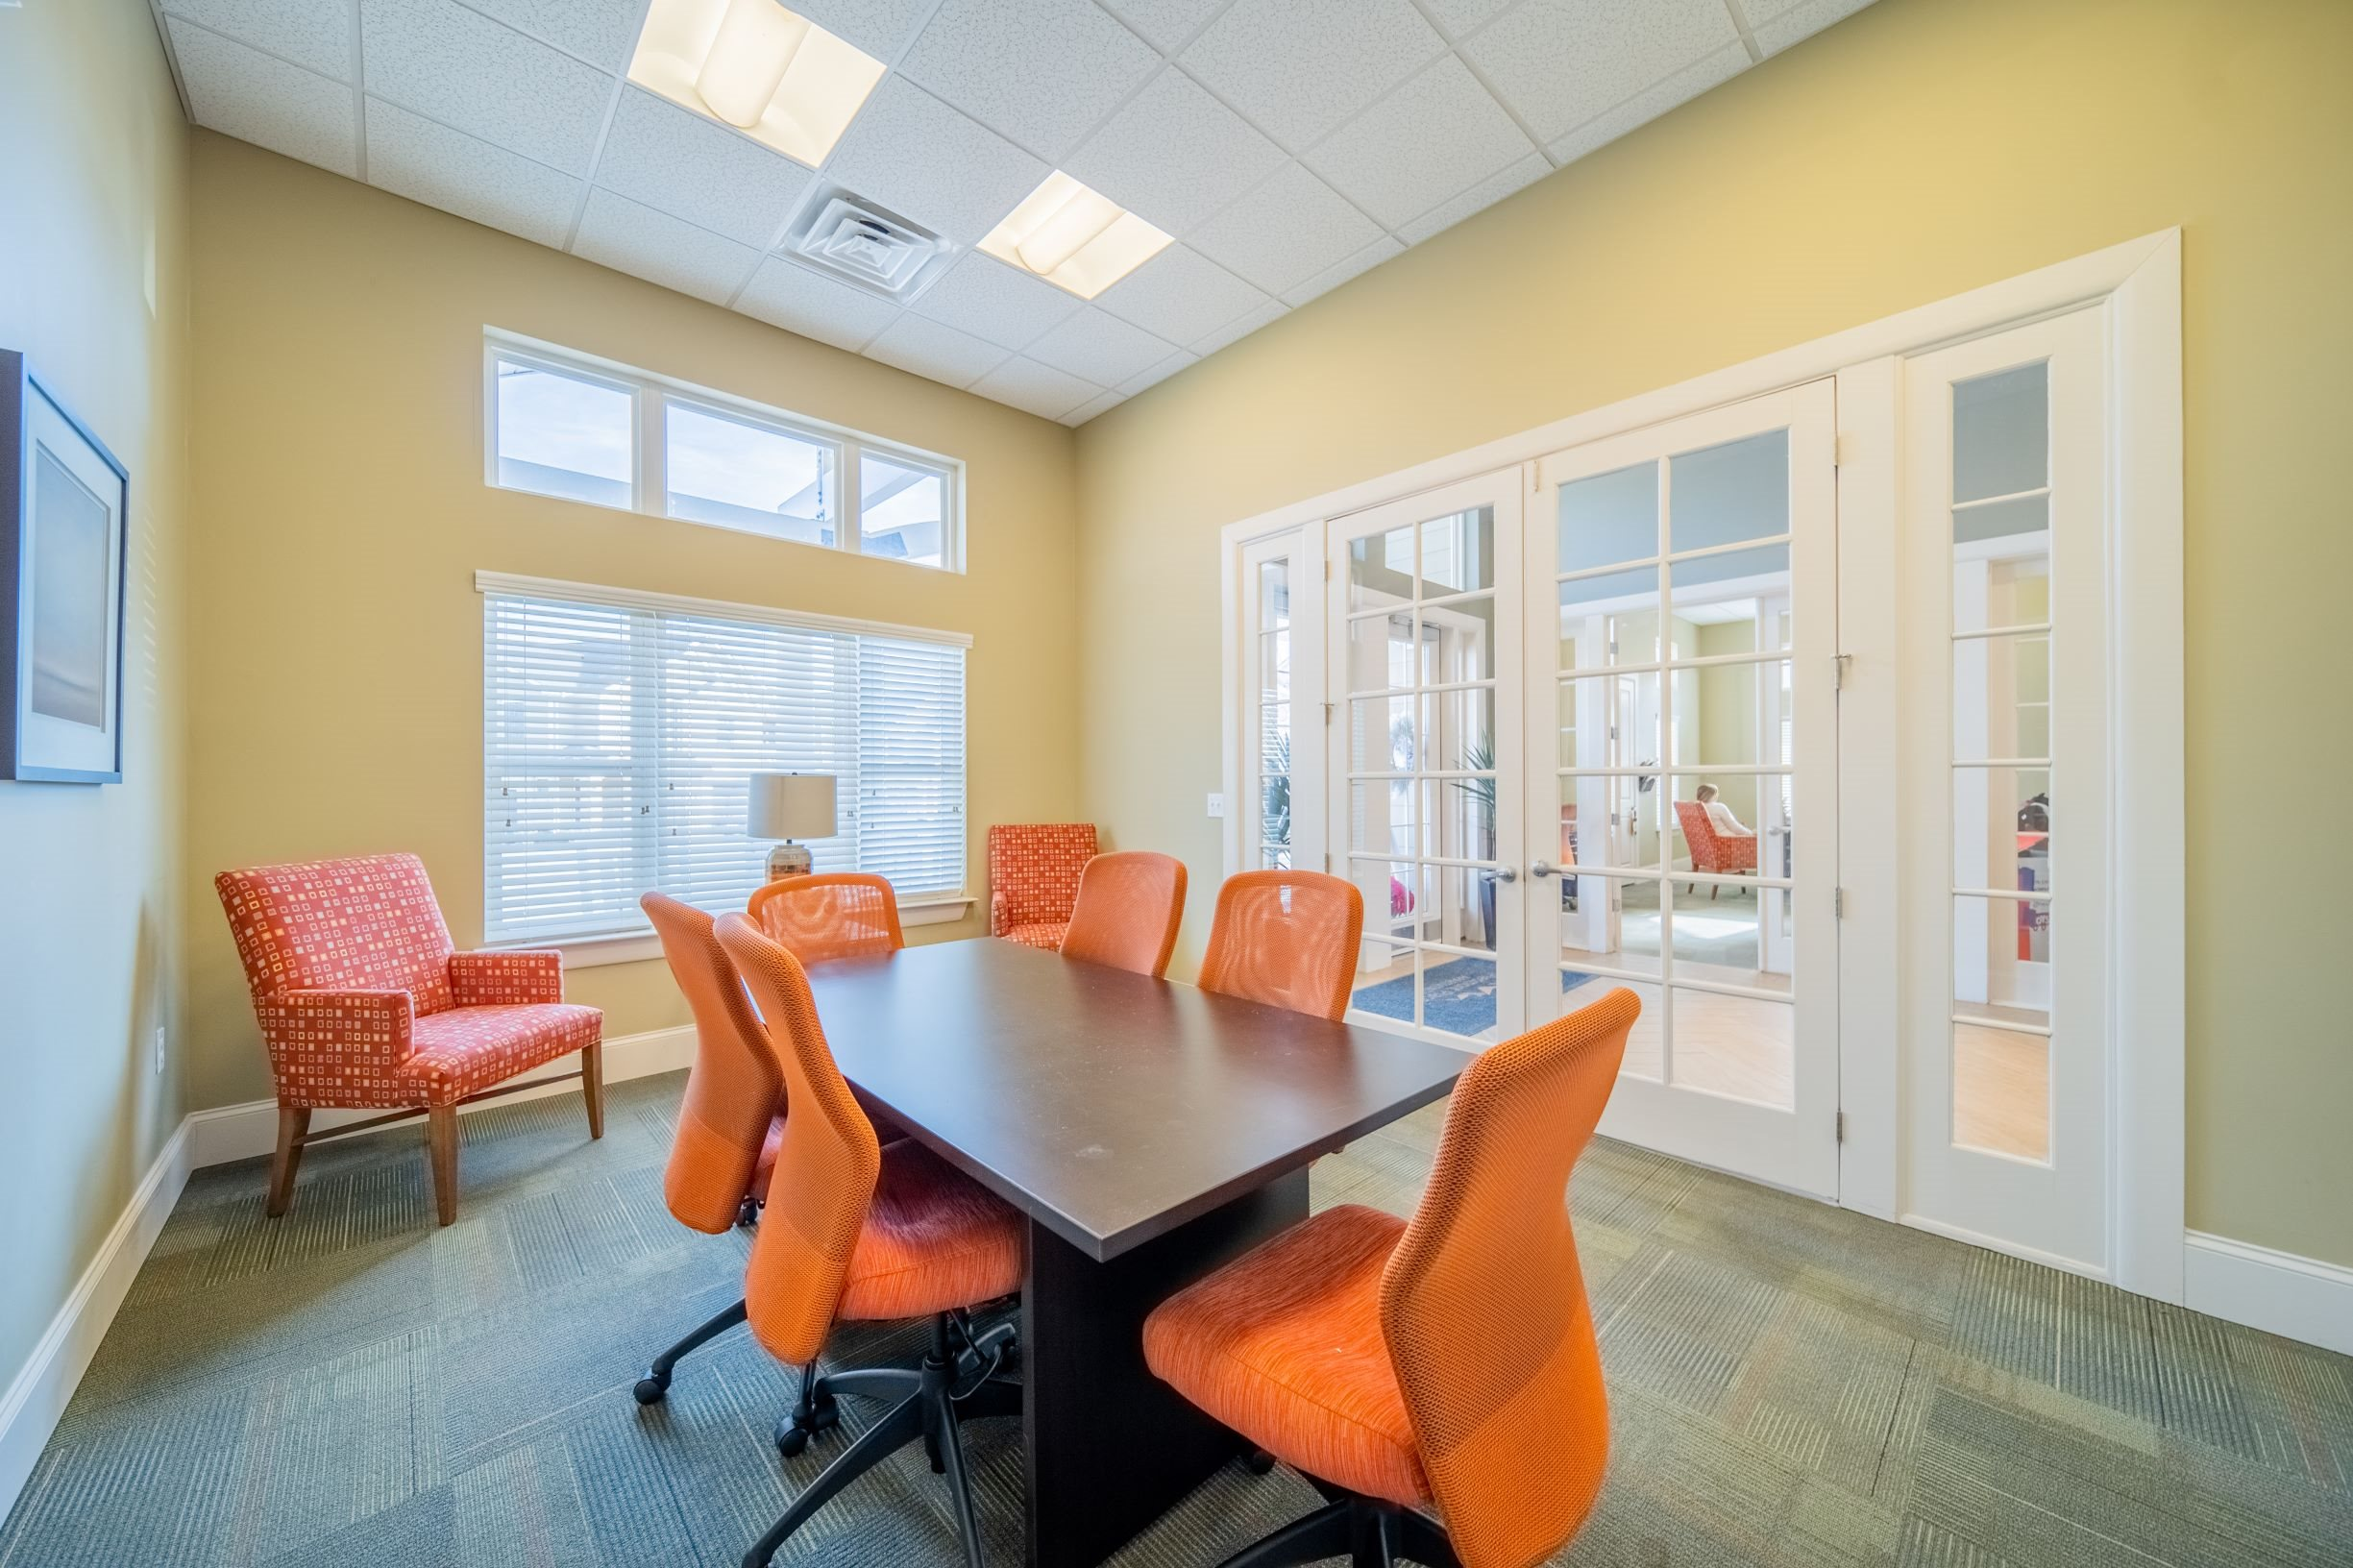 Conference room at Piedmont Place apartments in Greensboro, NC